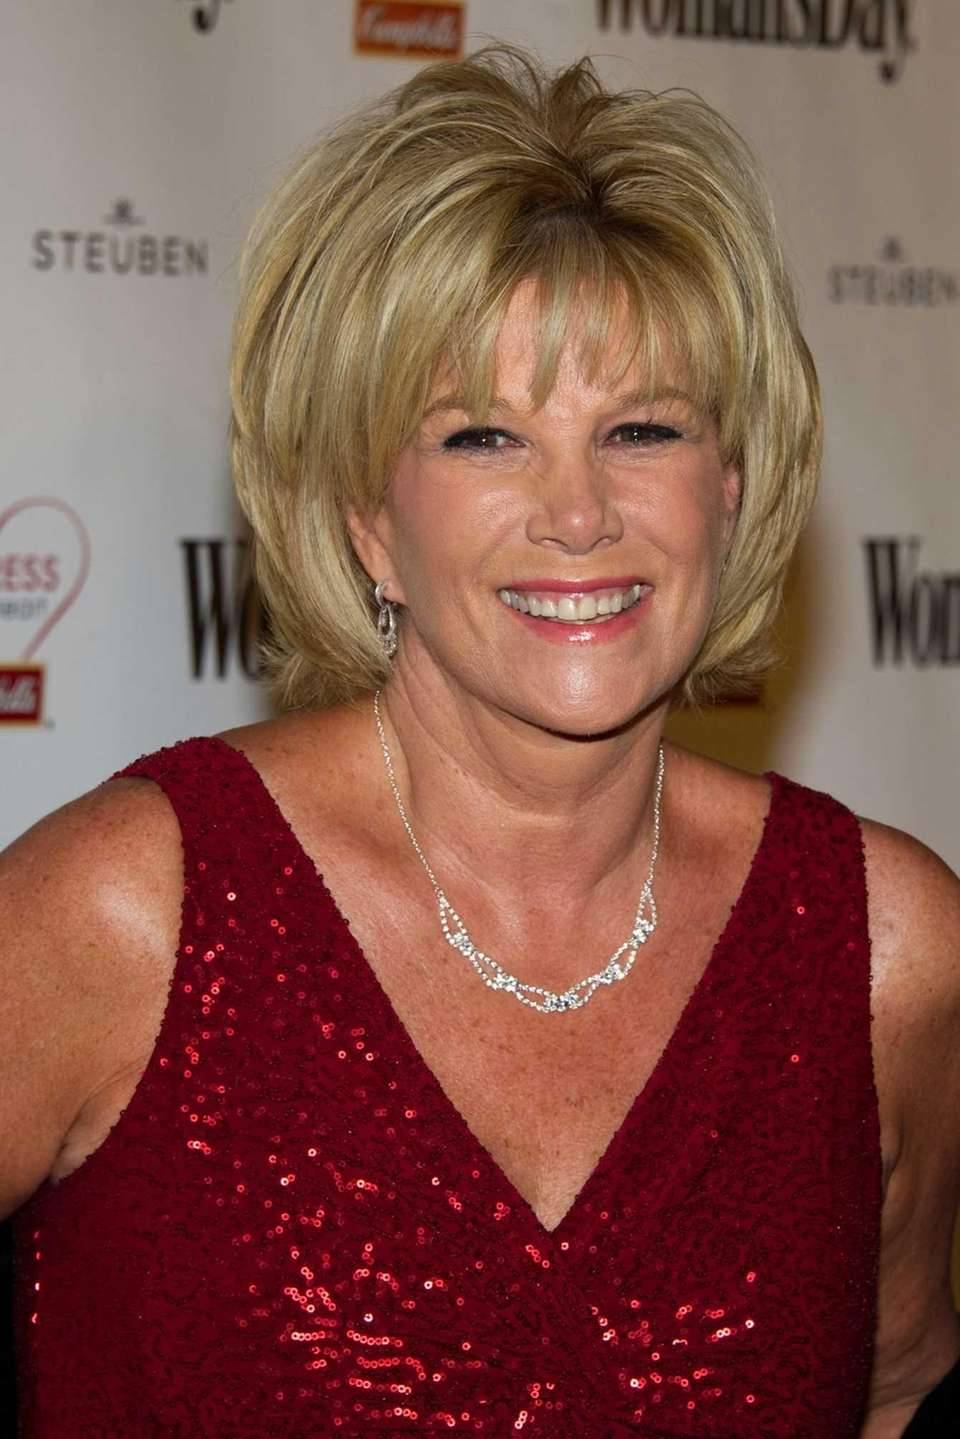 Journalist and TV host Joan Lunden was diagnosed